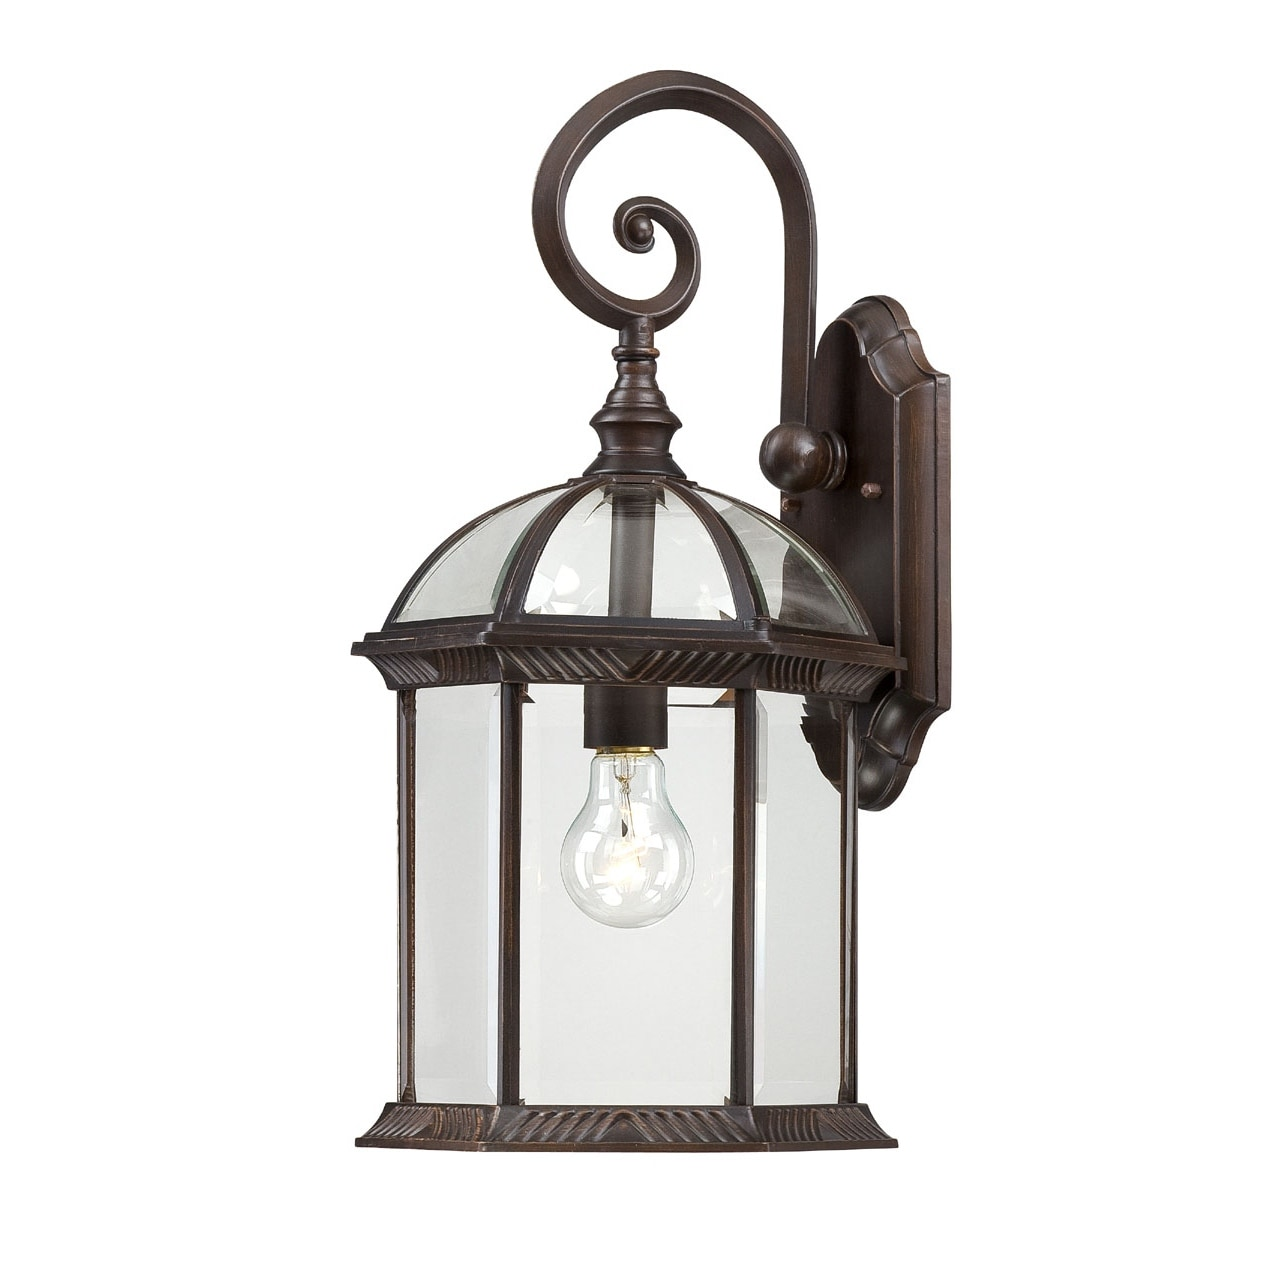 Wall Sconces Rustic: Shop Nuvo Boxwood 1-light Rustic Bronze 19-inch Wall